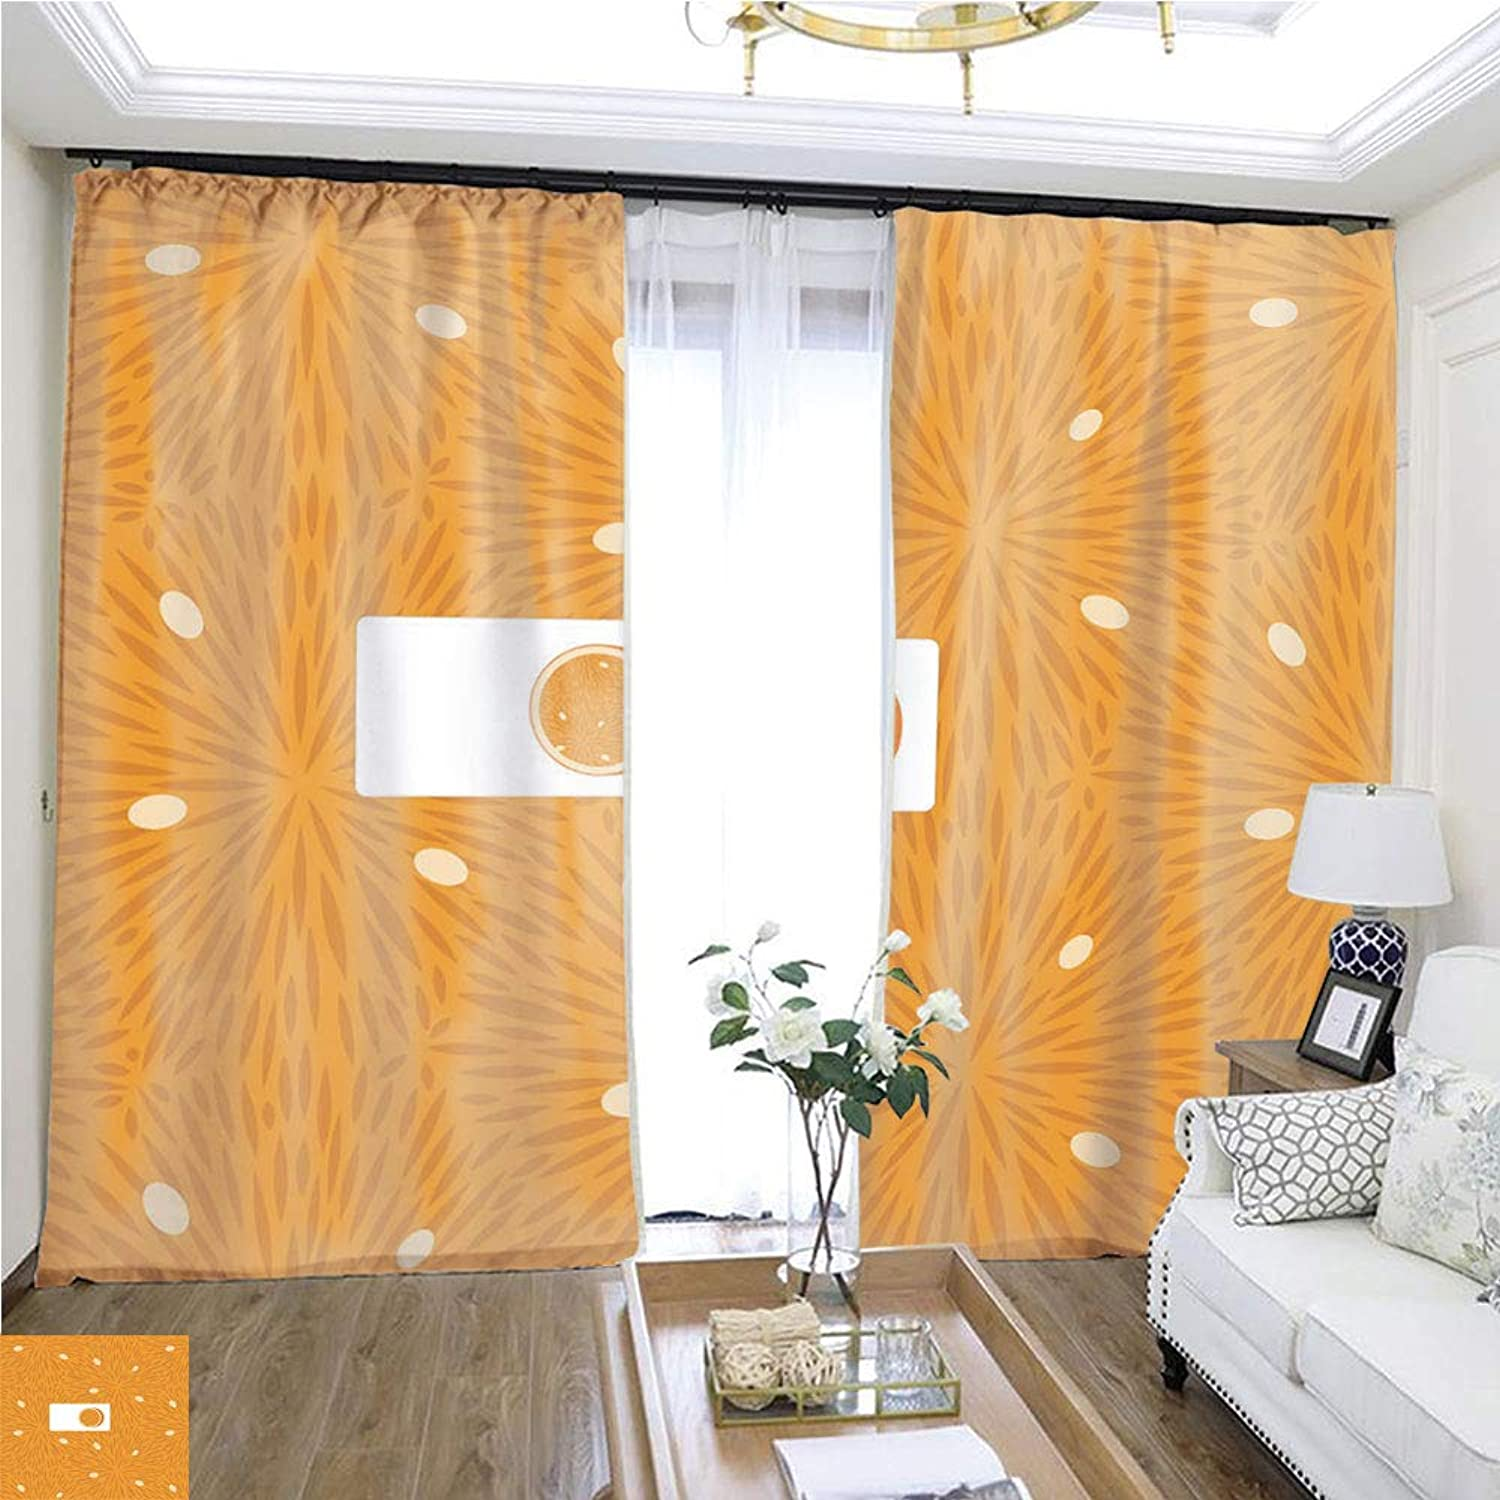 Air Port Screen Food Patterns Fruit orange1 W108 x L80 Block The Sun Highprecision Curtains for bedrooms Living Rooms Kitchens etc.